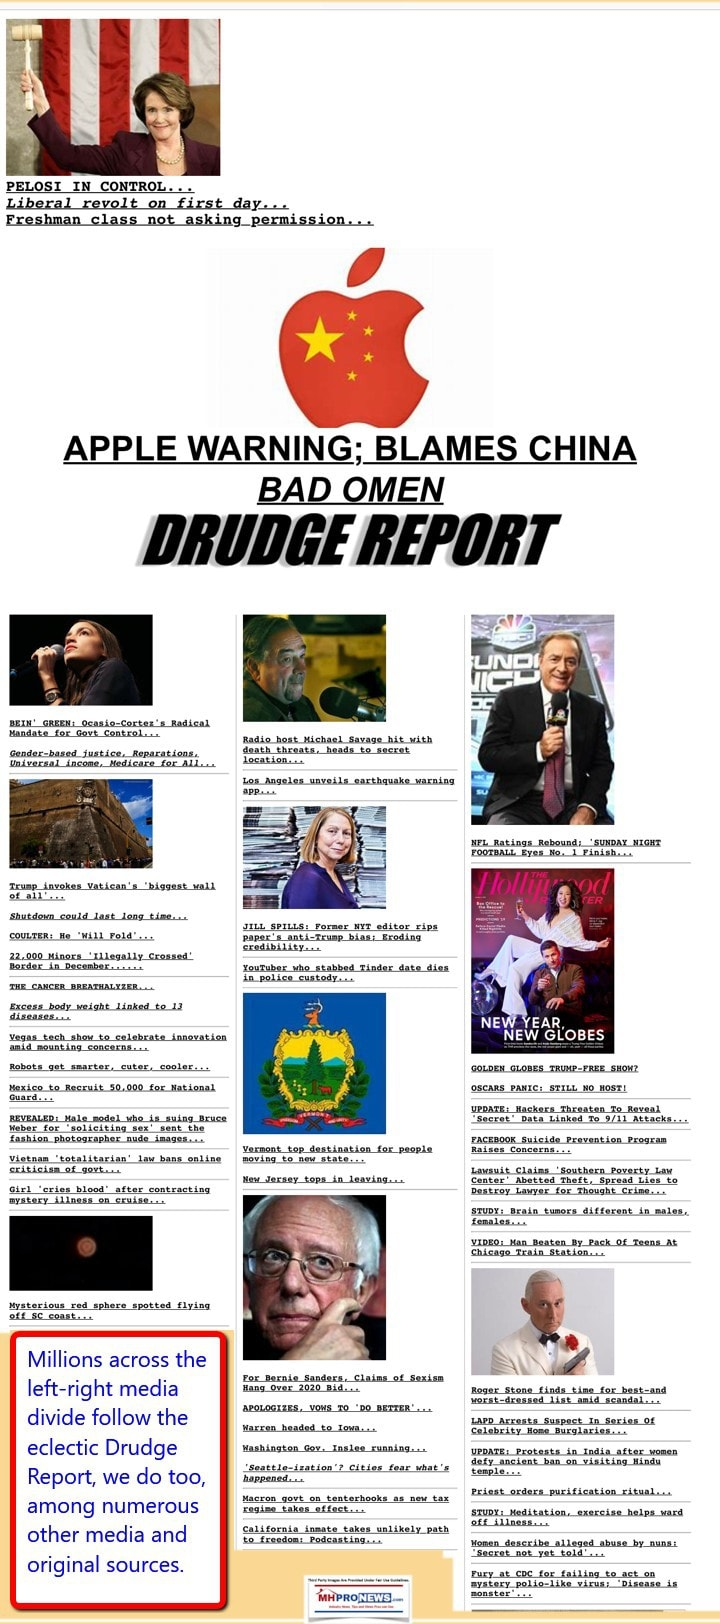 DrudgeReport132019DailyBusinessNewsMHproNews